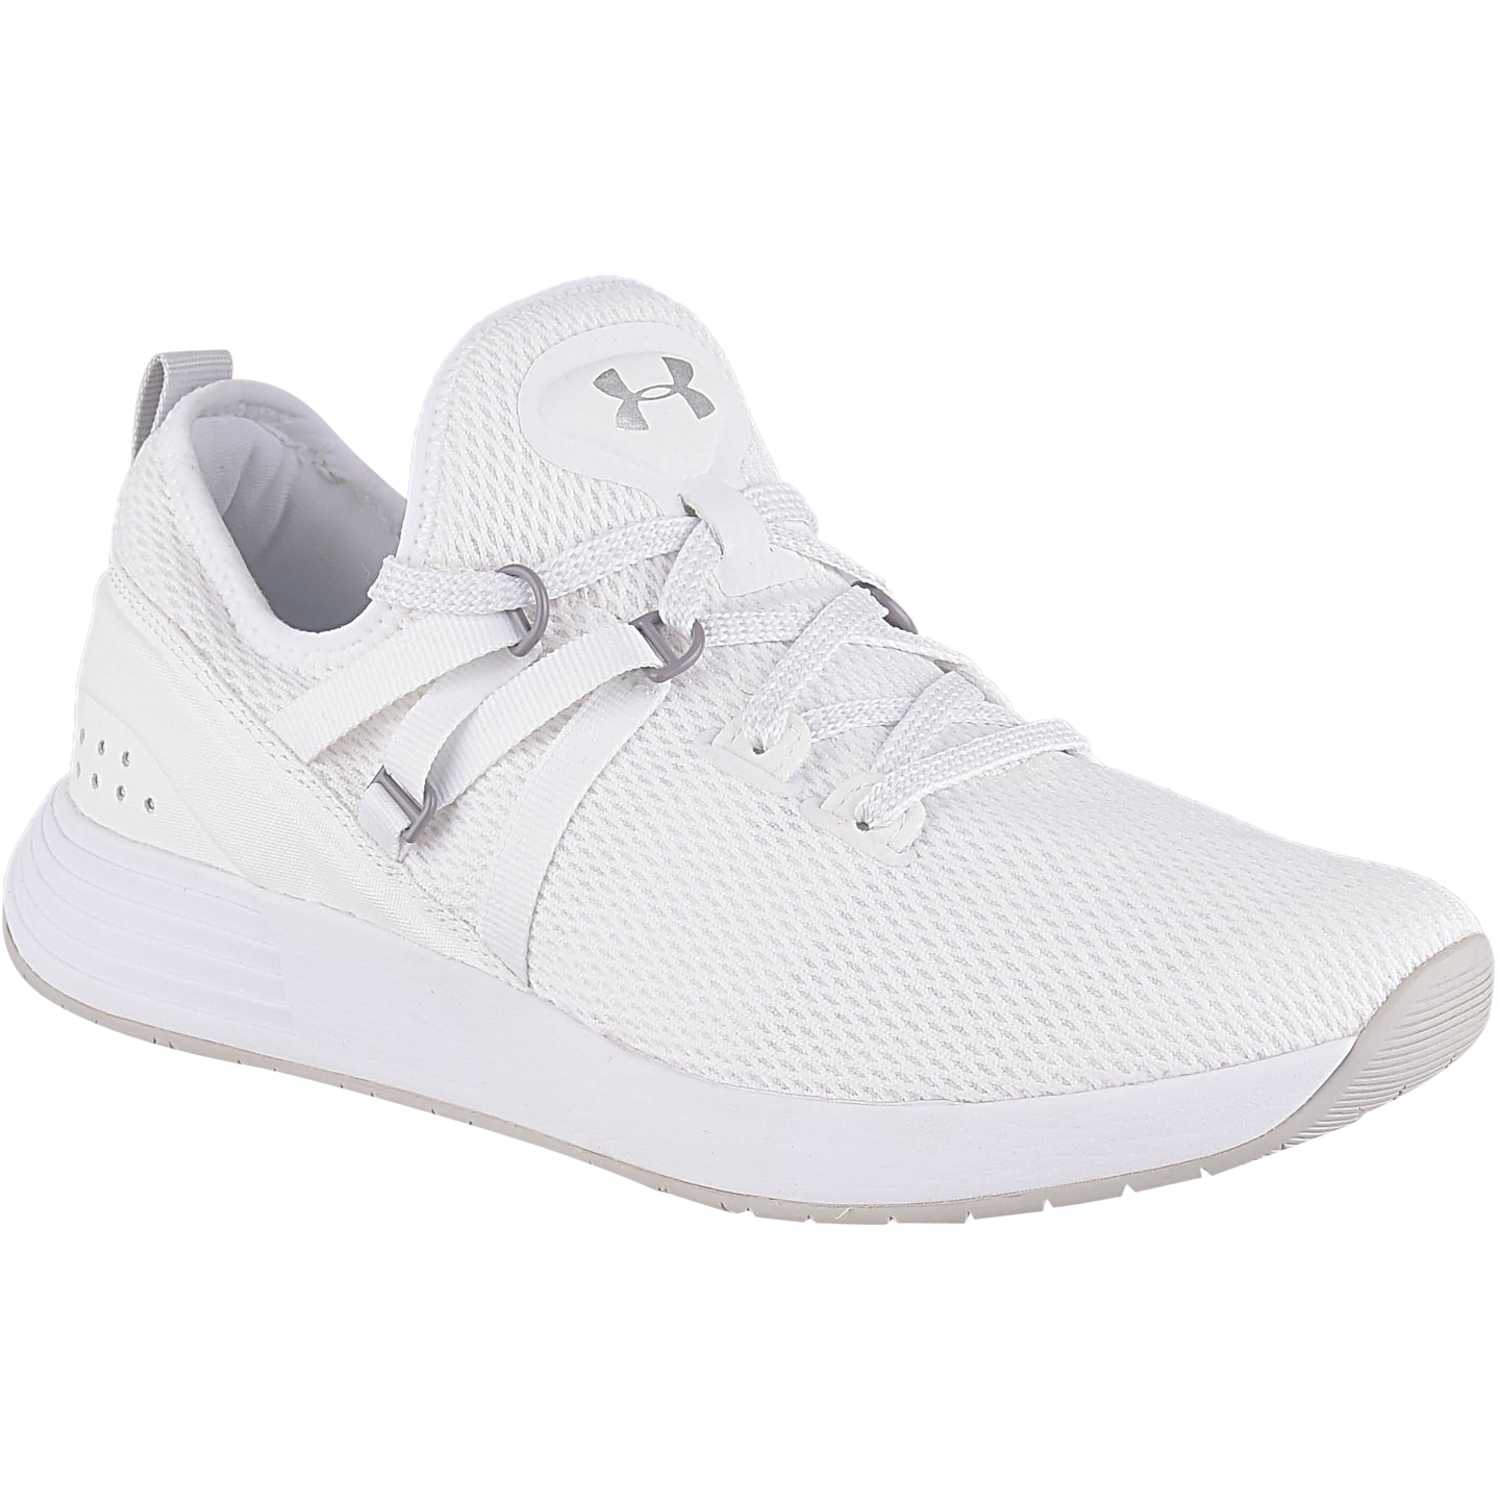 Under Armour ua w breathe trainer Blanco Mujeres